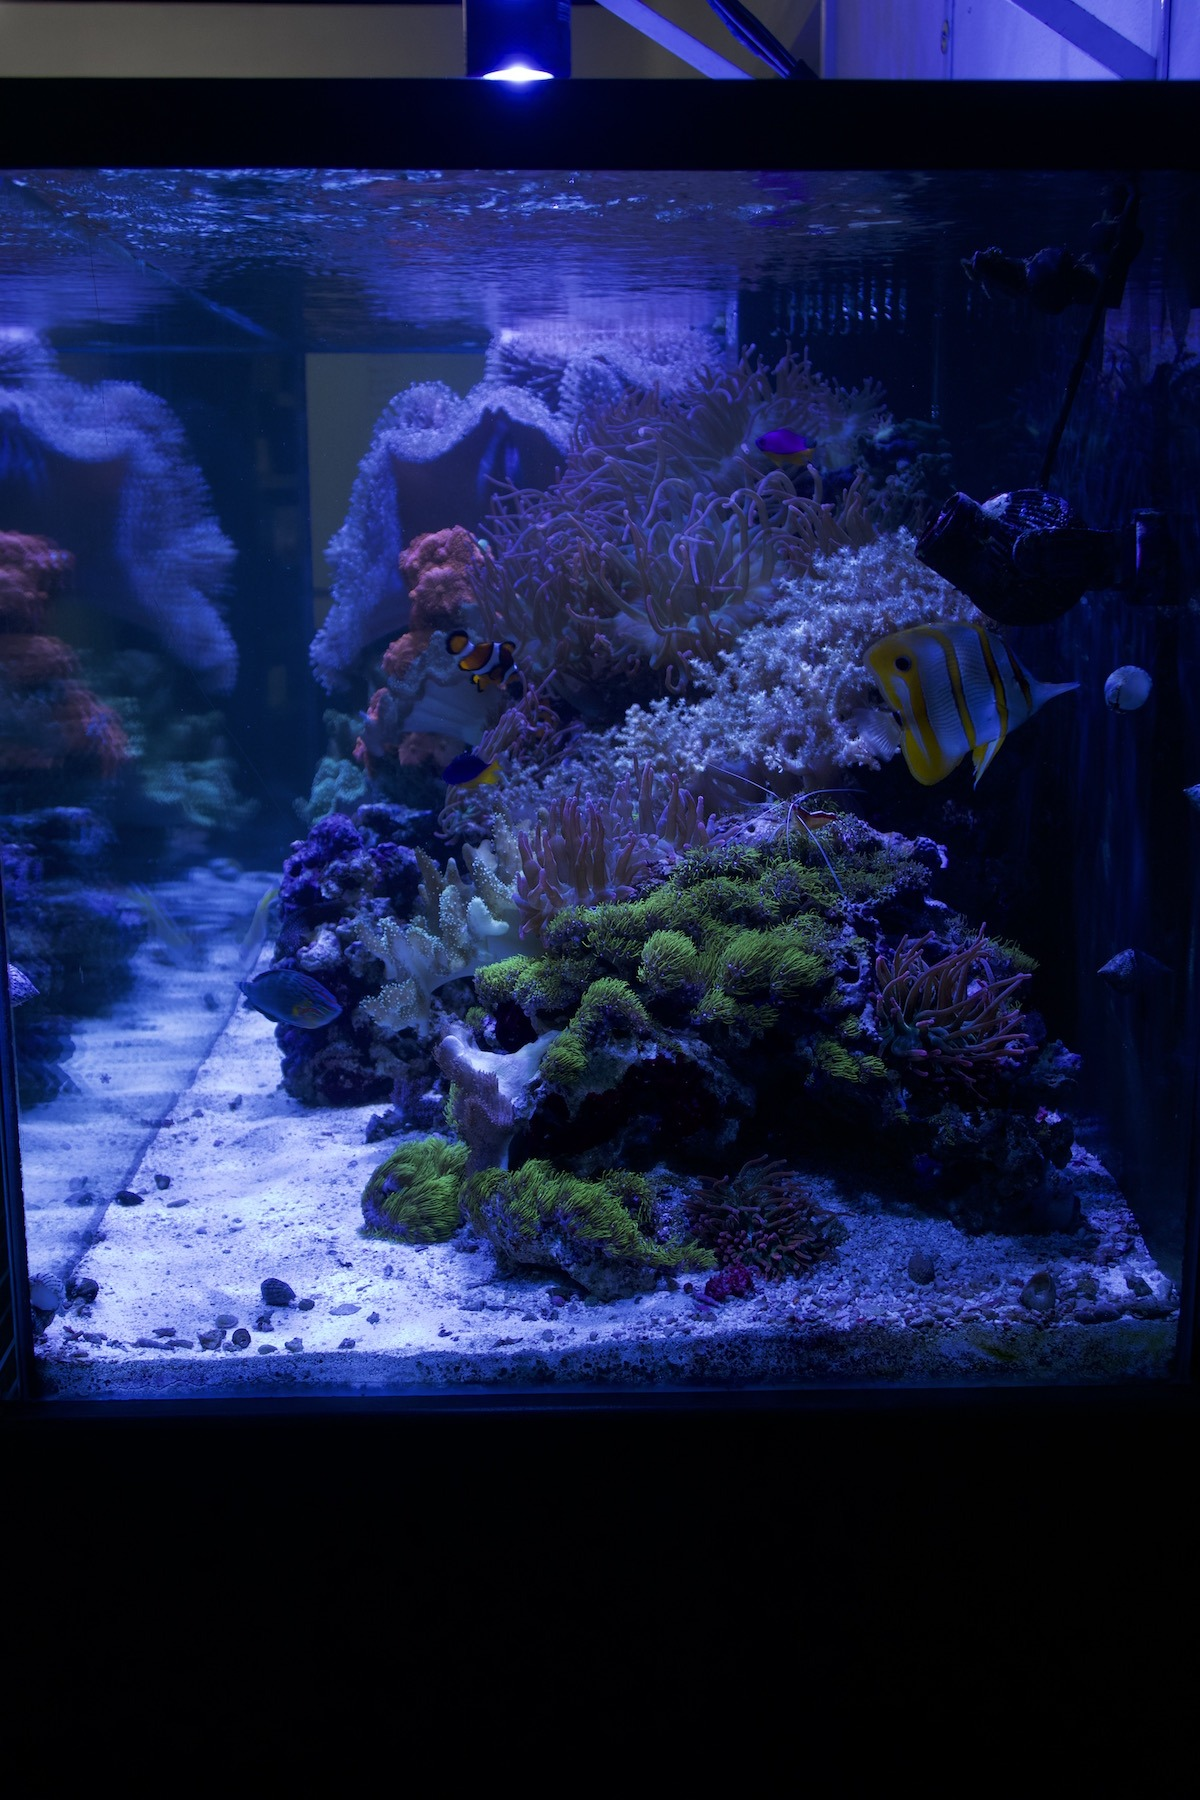 acrylic aquarium with saltwater coral reef